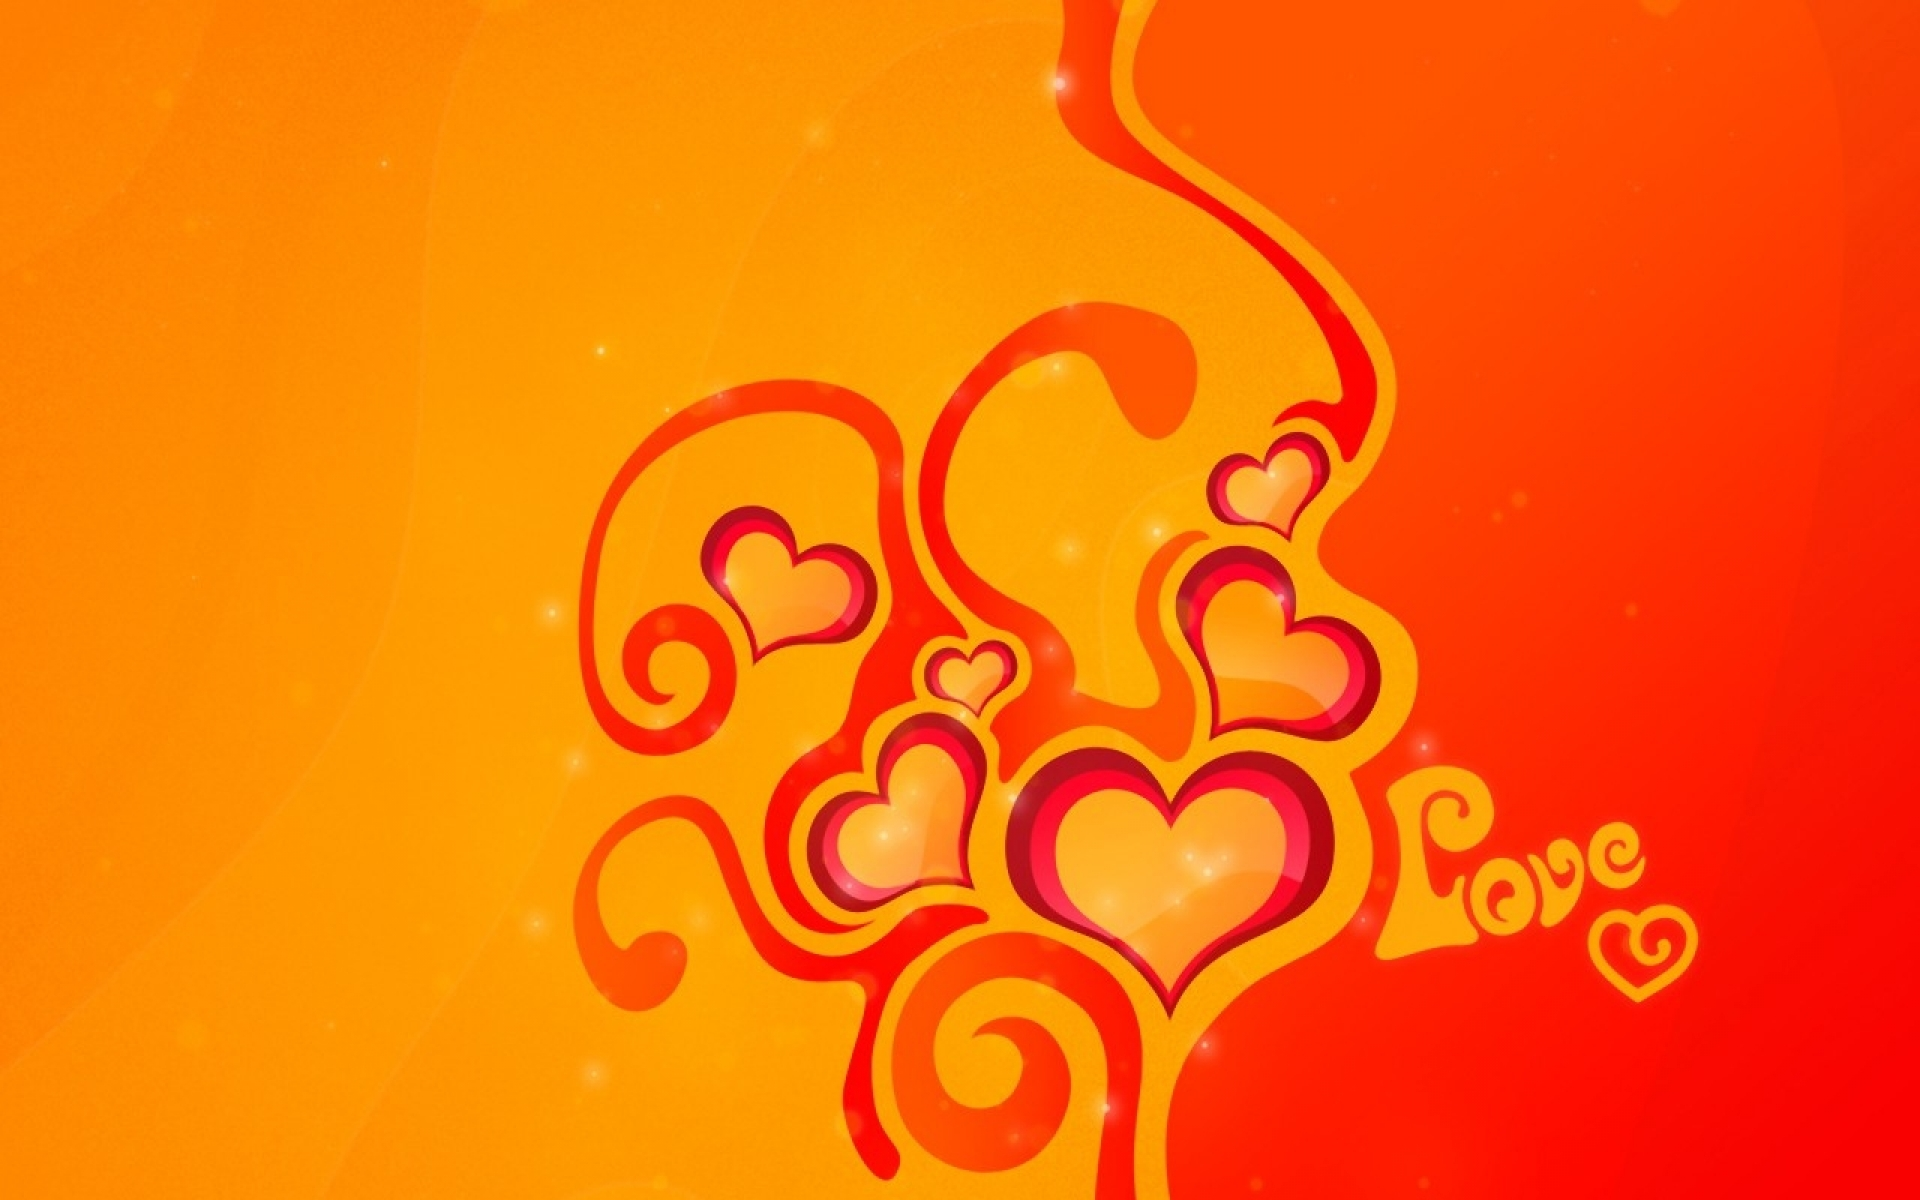 Abstract Love Yellow & Orange wallpapers Abstract Love ...